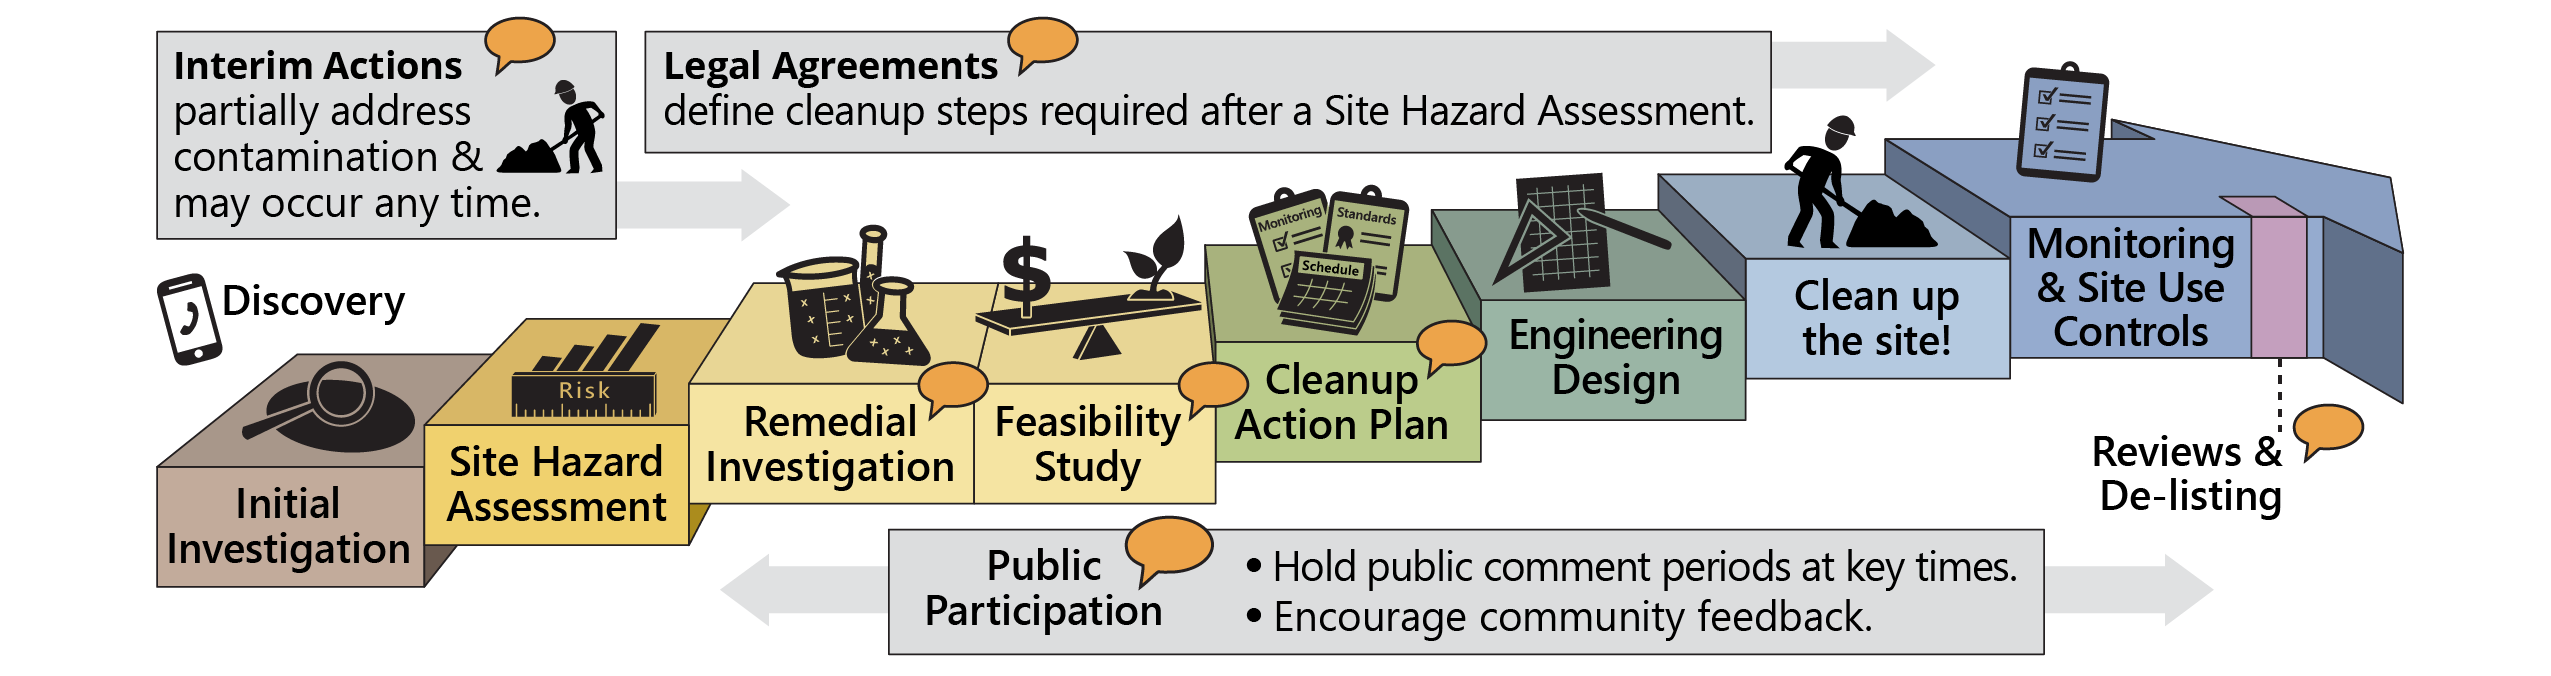 Visit the link for a text description of the steps in the cleanup process.